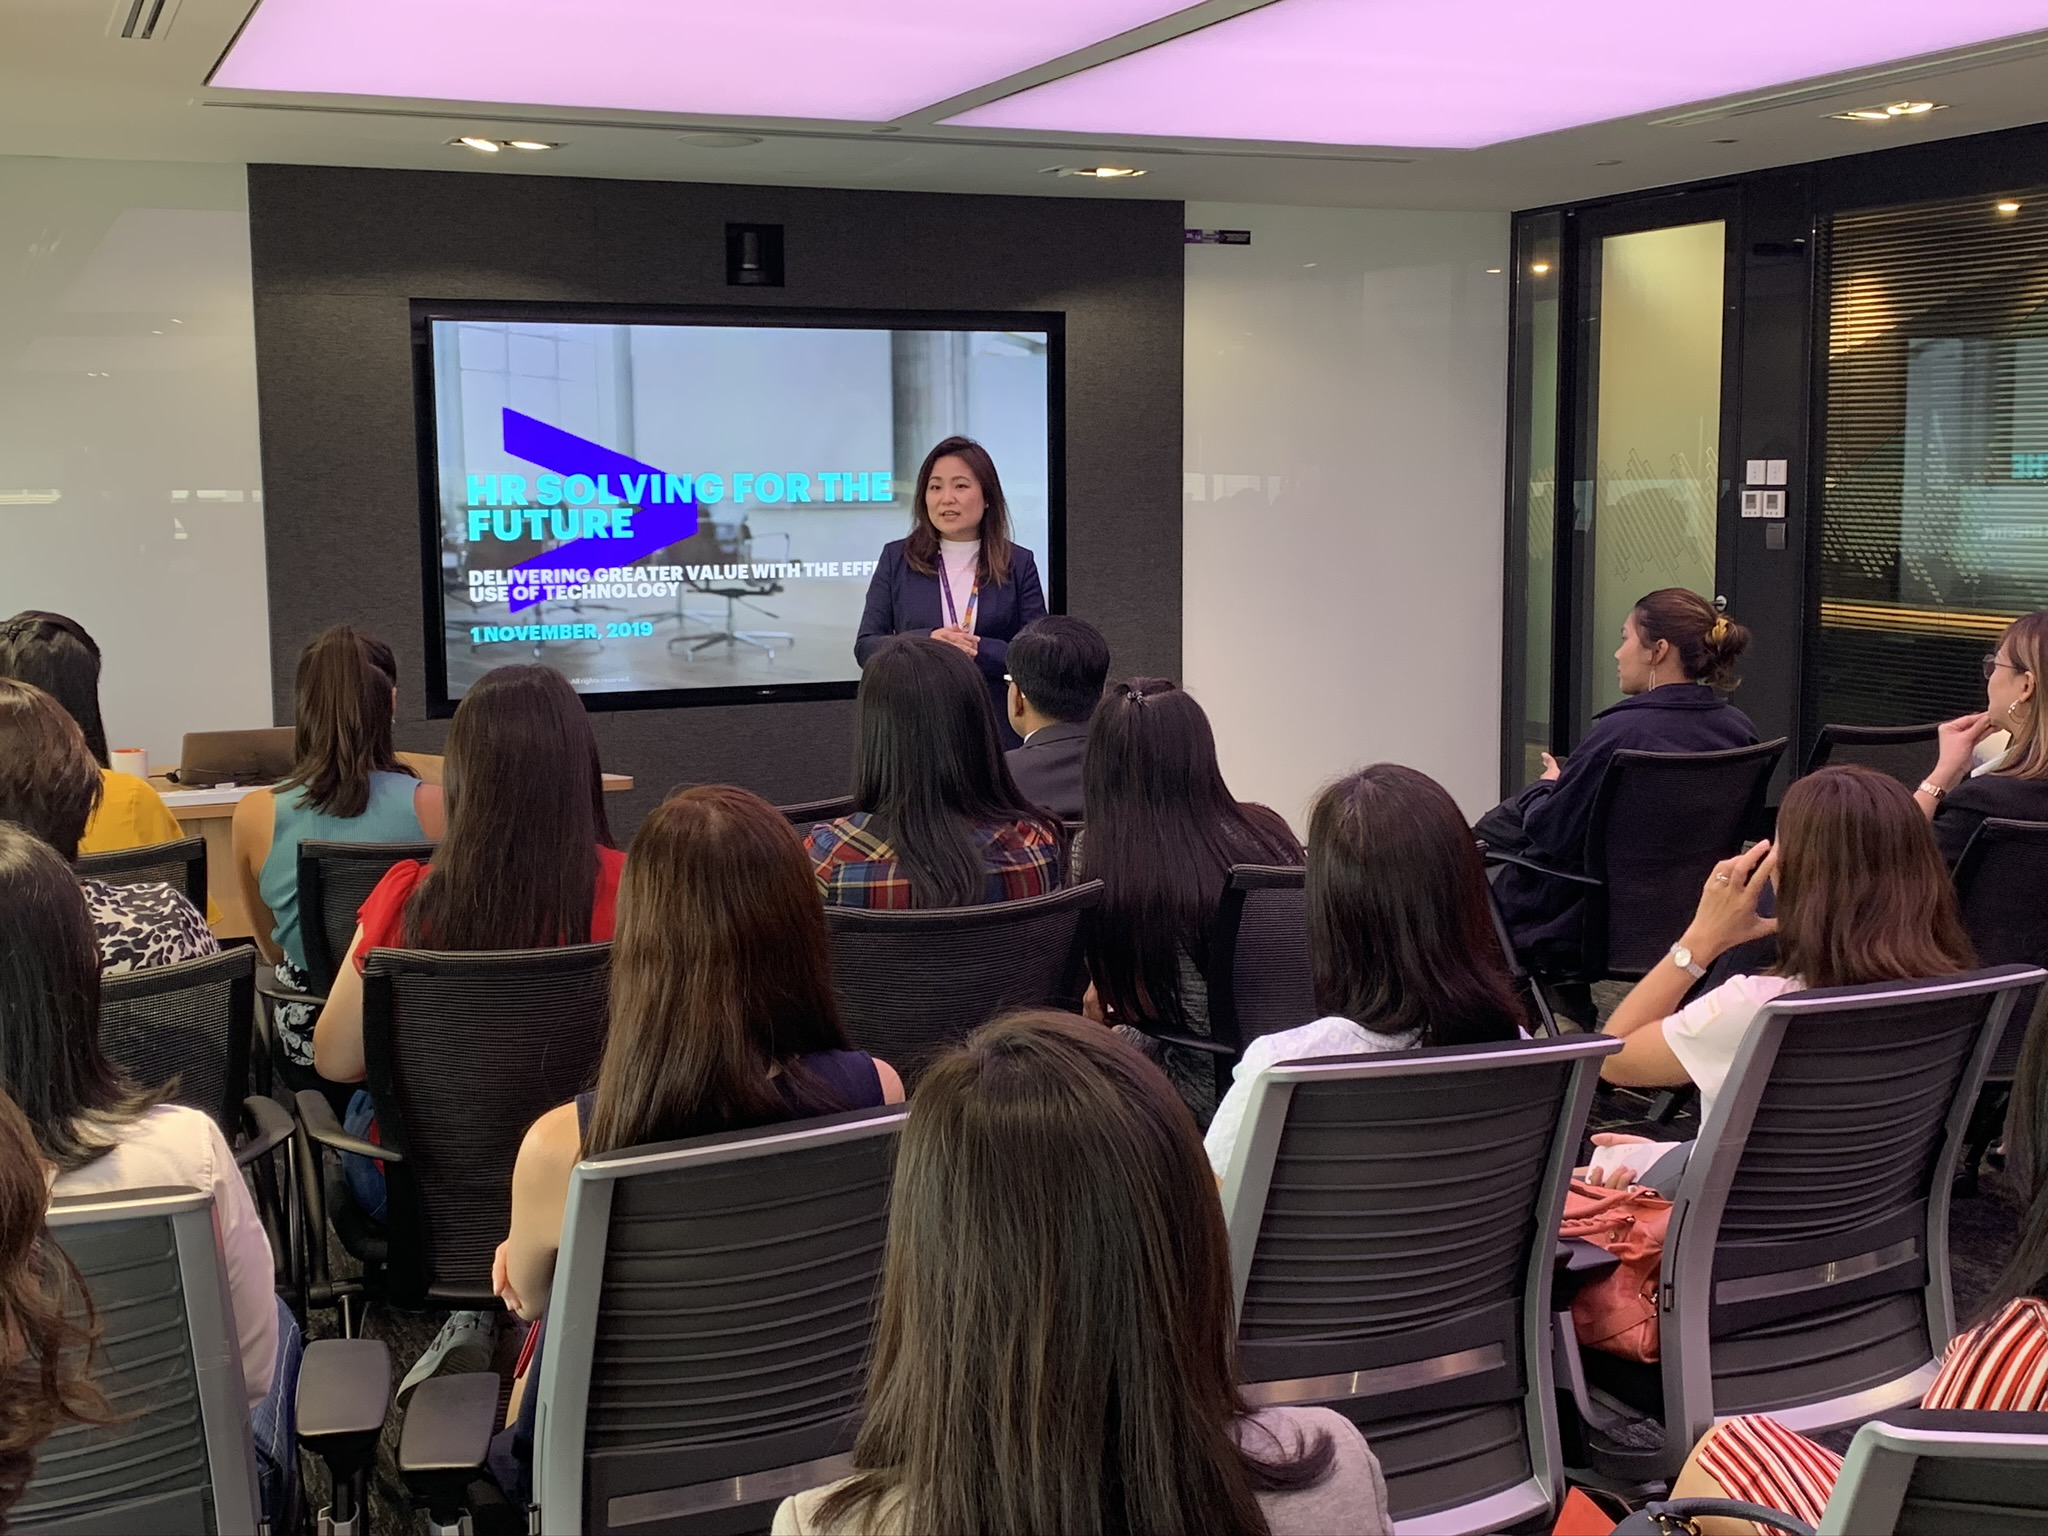 IHRP with accenture learning journey 01 Nov 2019 event photos 1